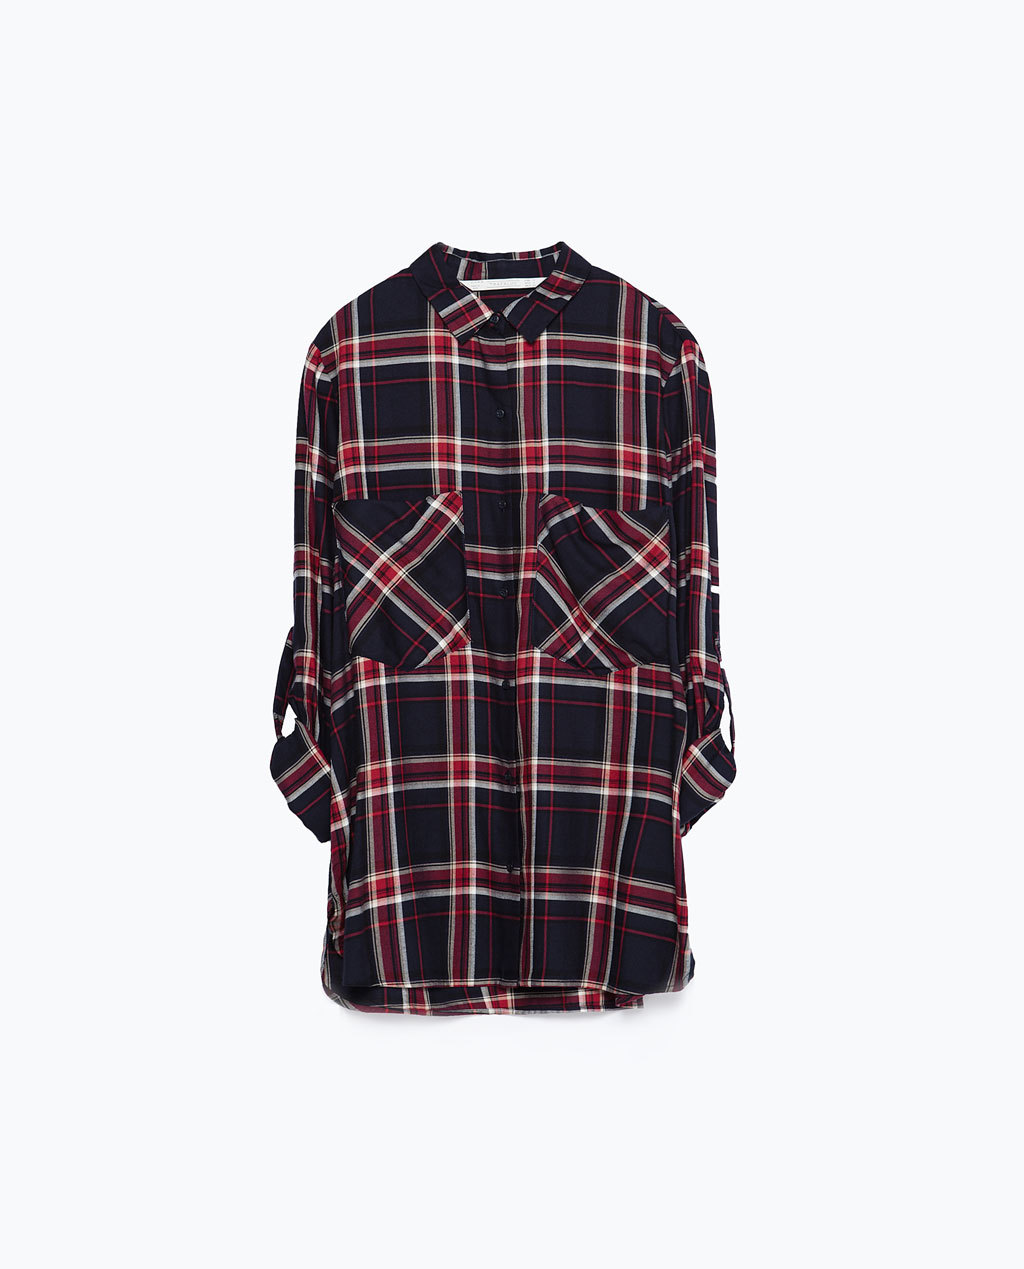 Check Shirt - neckline: shirt collar/peter pan/zip with opening; pattern: checked/gingham; length: below the bottom; style: shirt; secondary colour: true red; predominant colour: black; occasions: casual, creative work; fibres: viscose/rayon - 100%; fit: loose; sleeve length: 3/4 length; sleeve style: standard; texture group: cotton feel fabrics; pattern type: fabric; multicoloured: multicoloured; season: a/w 2015; trends: plaid and simple; wardrobe: highlight